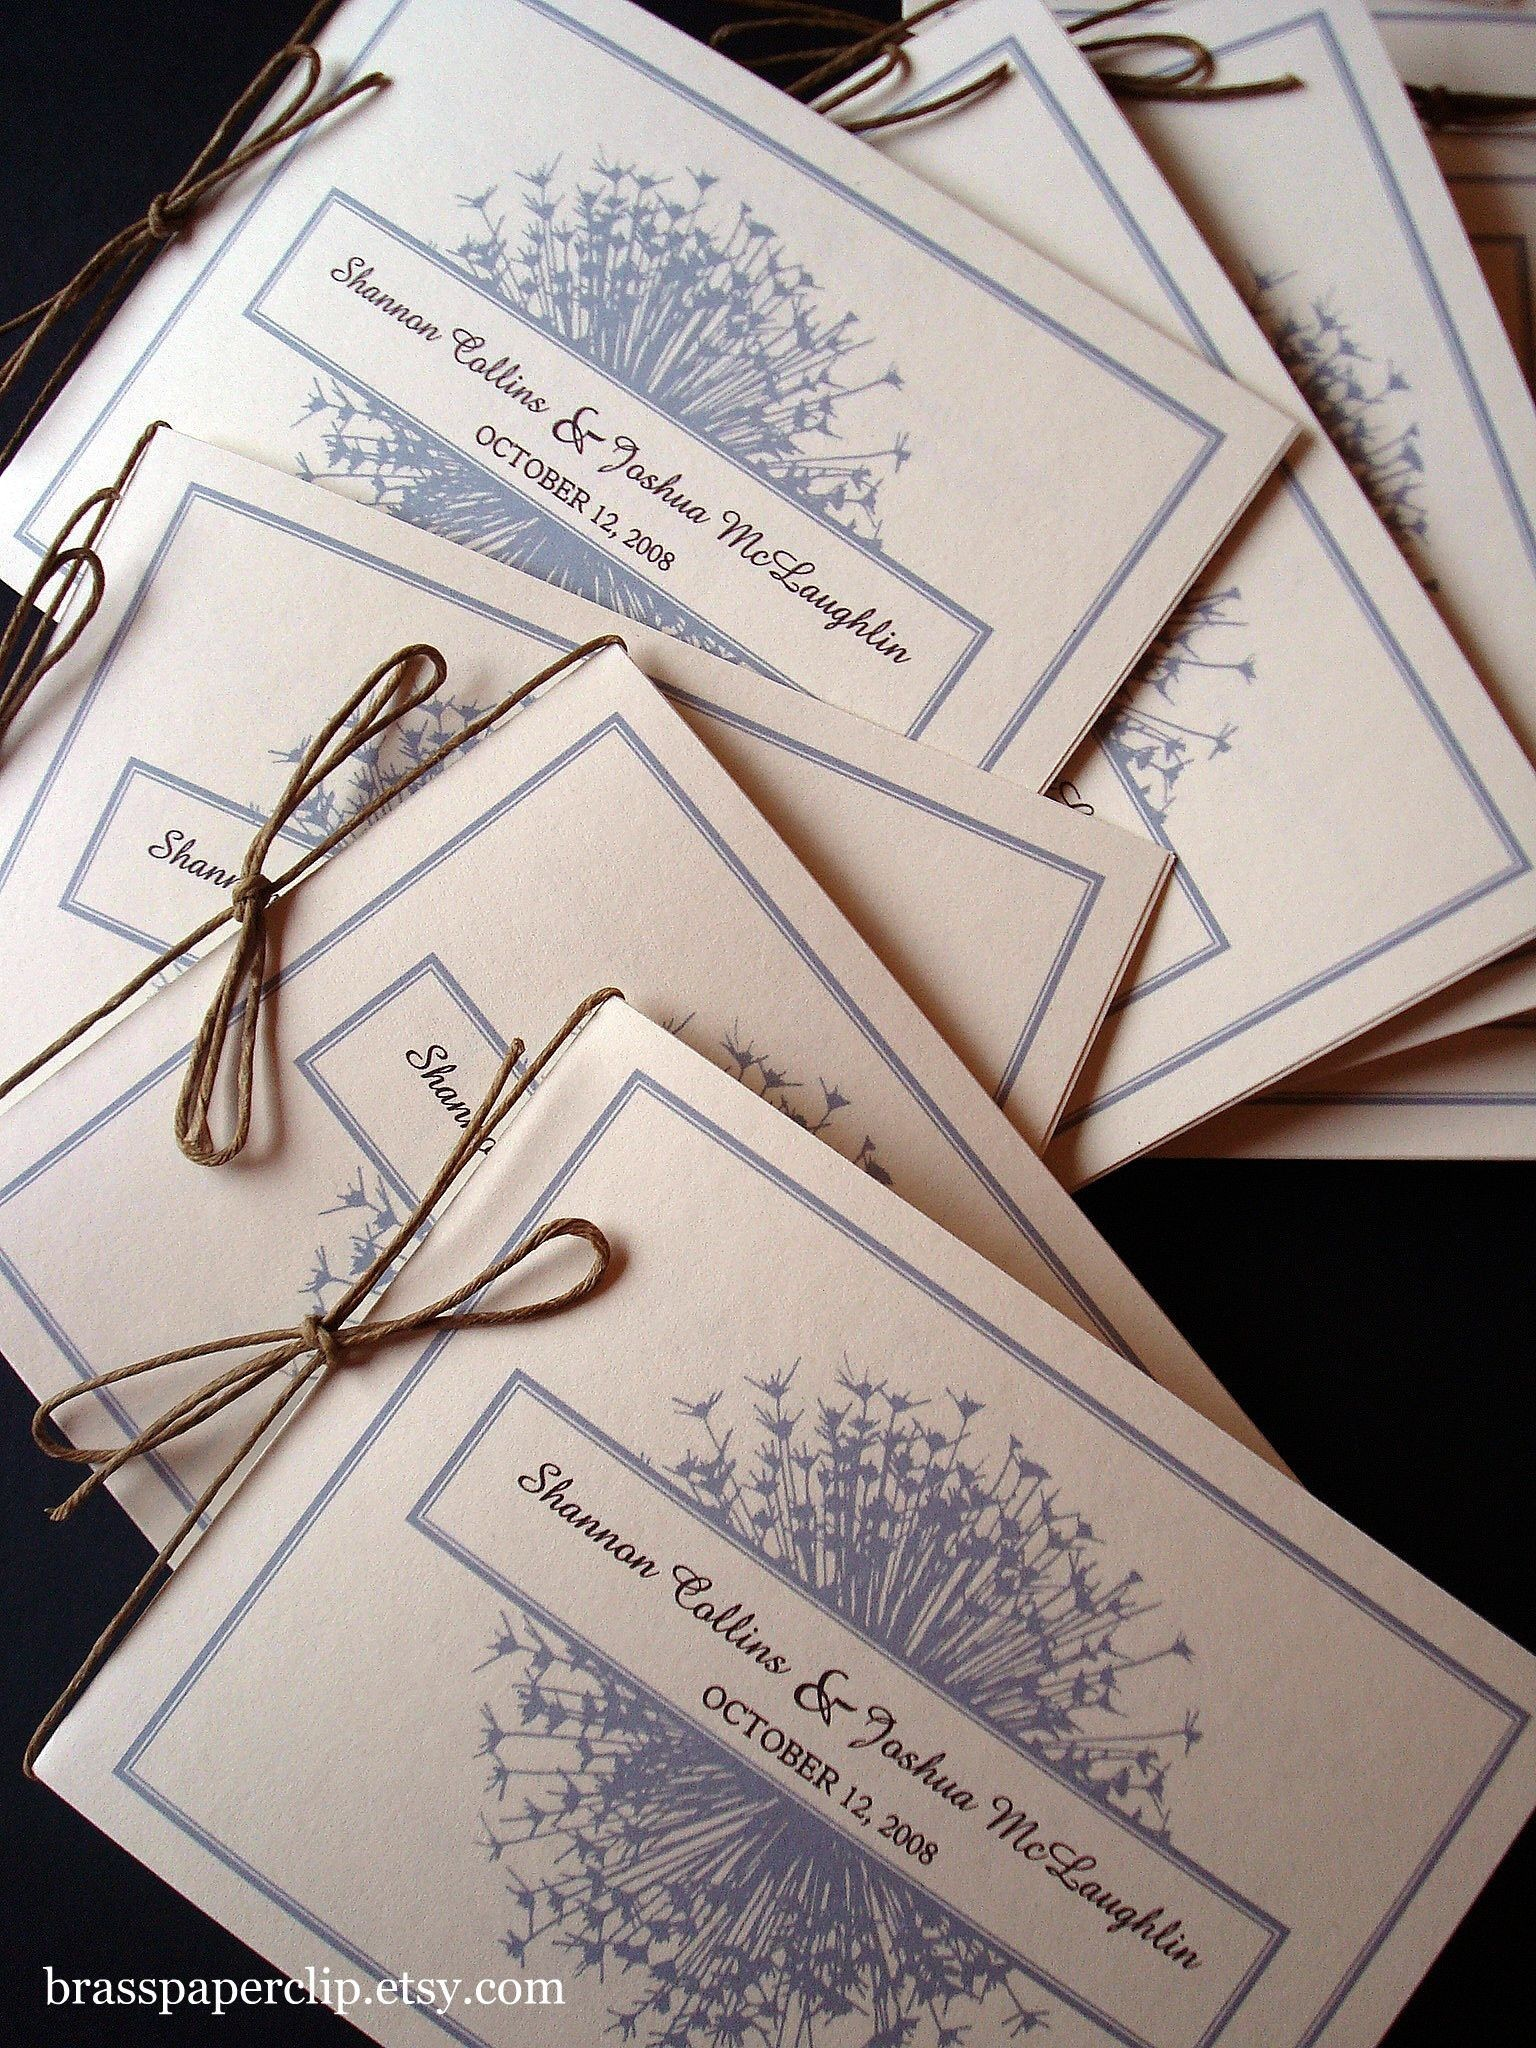 Ceremony, Flowers & Decor, Stationery, Invitations, Ceremony Programs, Programs, Custom, Brass paperclip